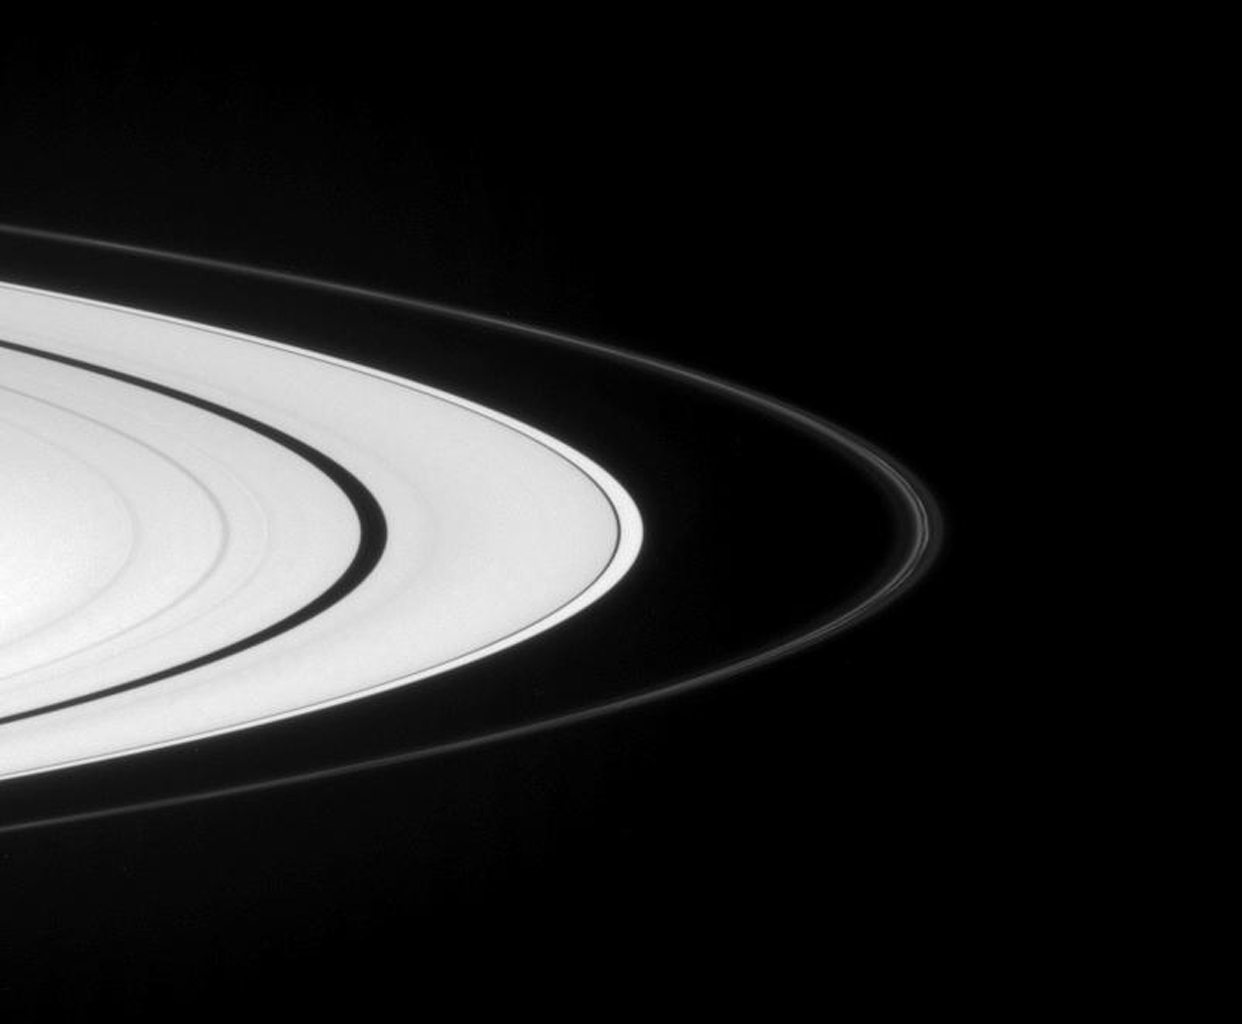 Captured by NASA's Cassini spacecraft on Sept. 7, 2007, Saturn's narrow F ring displays two bright strands, flanked by fainter material. The continuing evolution of this quirky ring is an ongoing subject of study for Cassini scientists.